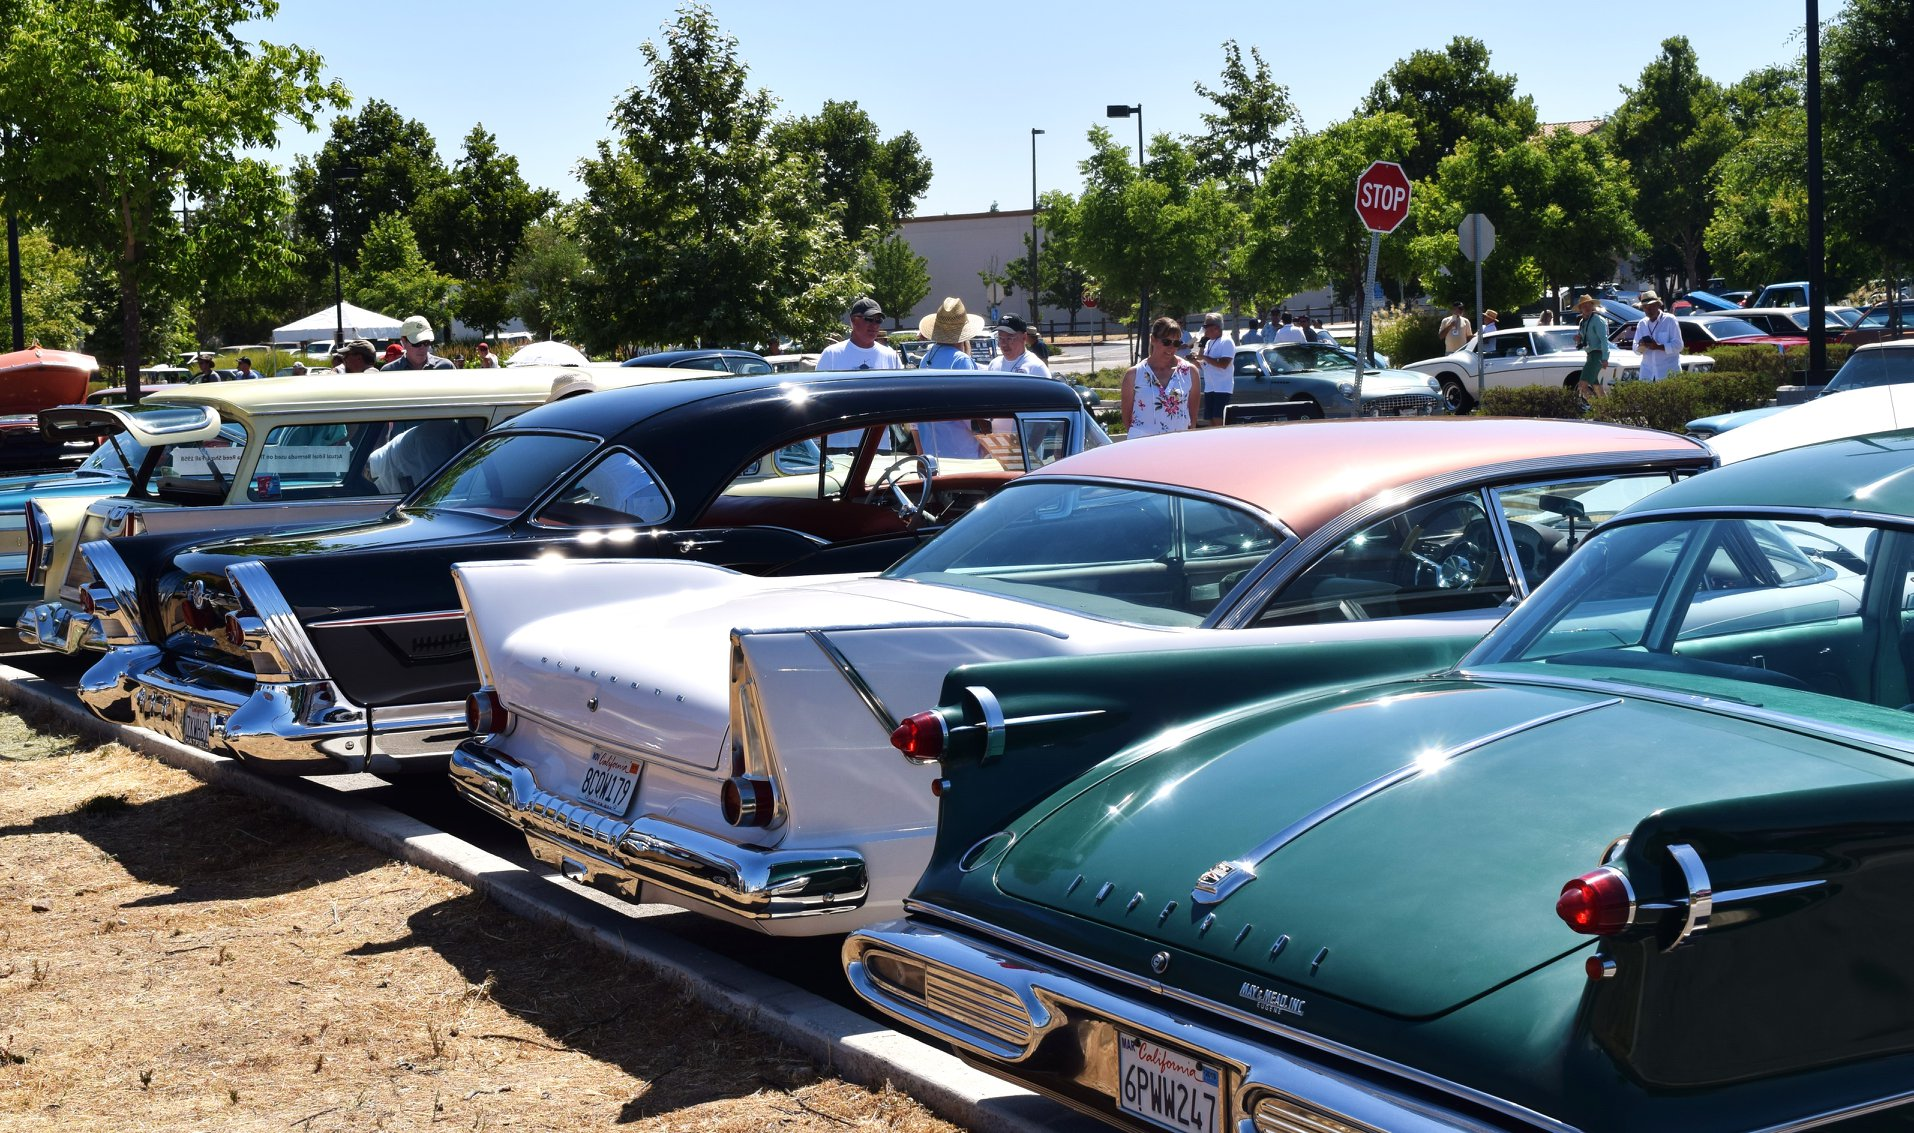 A Car Show - Fins and more fins